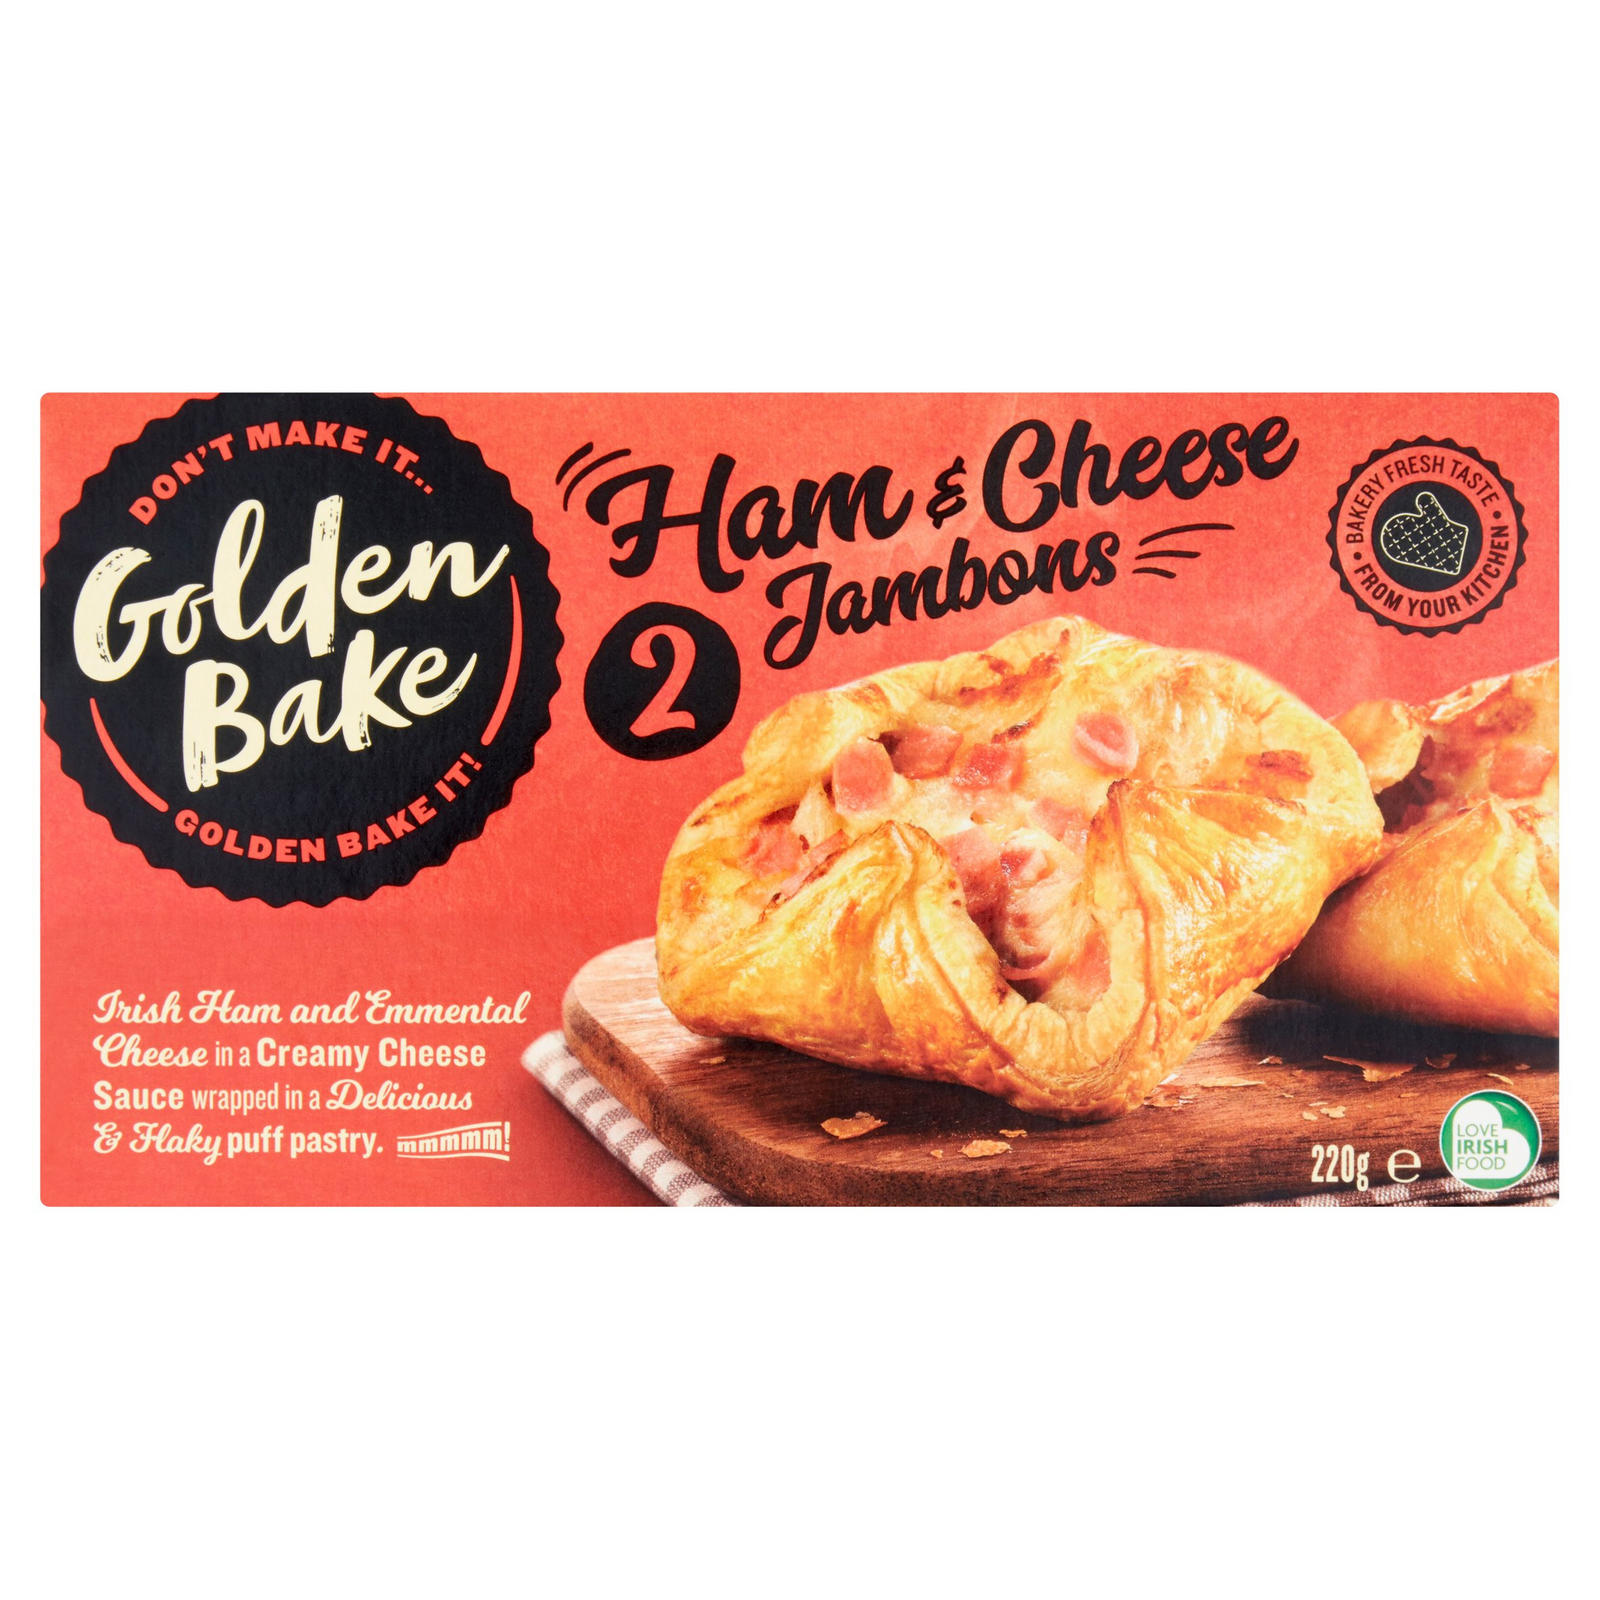 Golden Bake 2 Ham Cheese Jambons 220g Iceland Foods